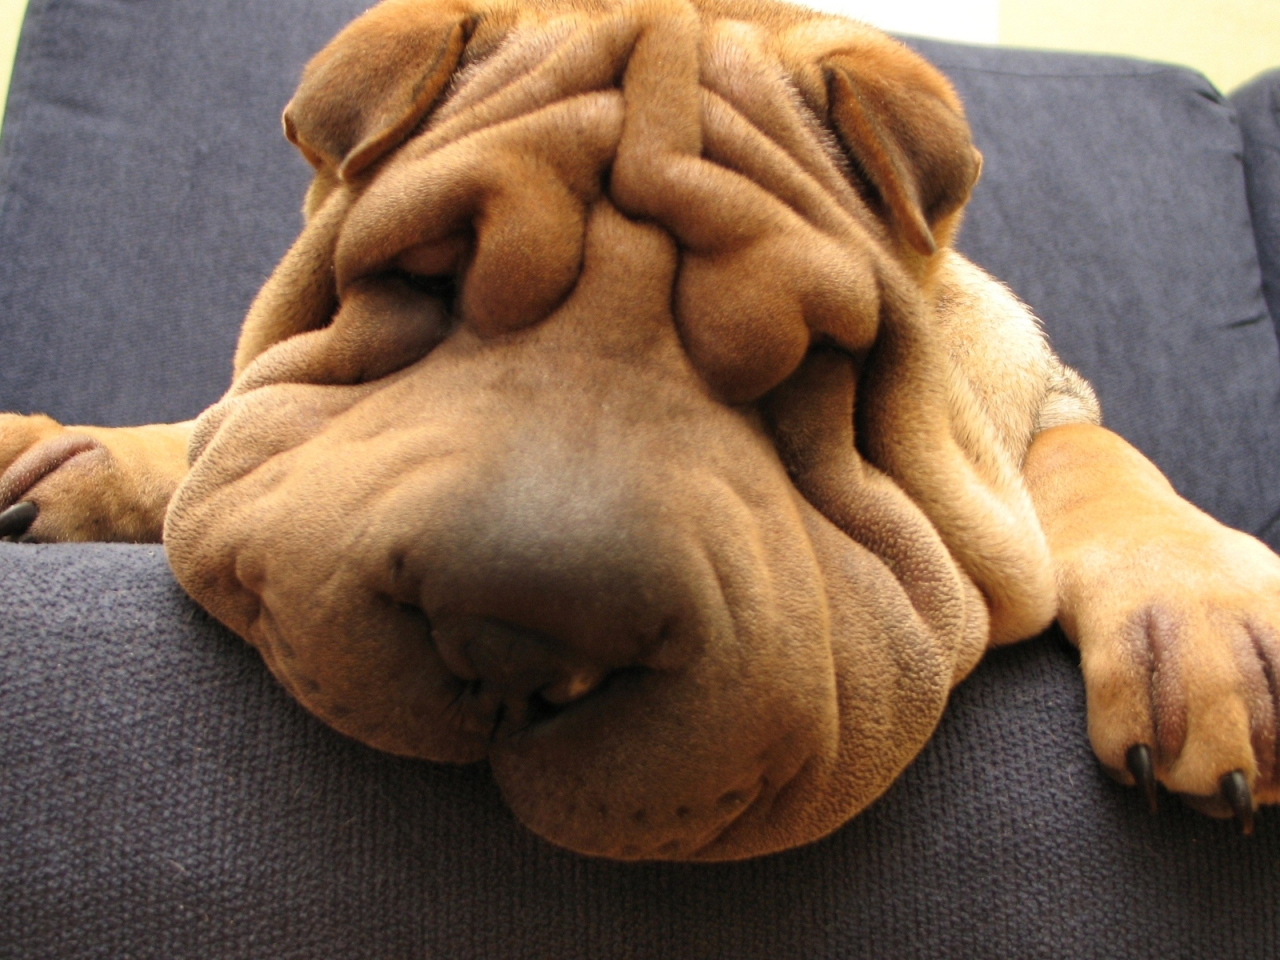 Shar Pei Dog for 1280 x 960 resolution